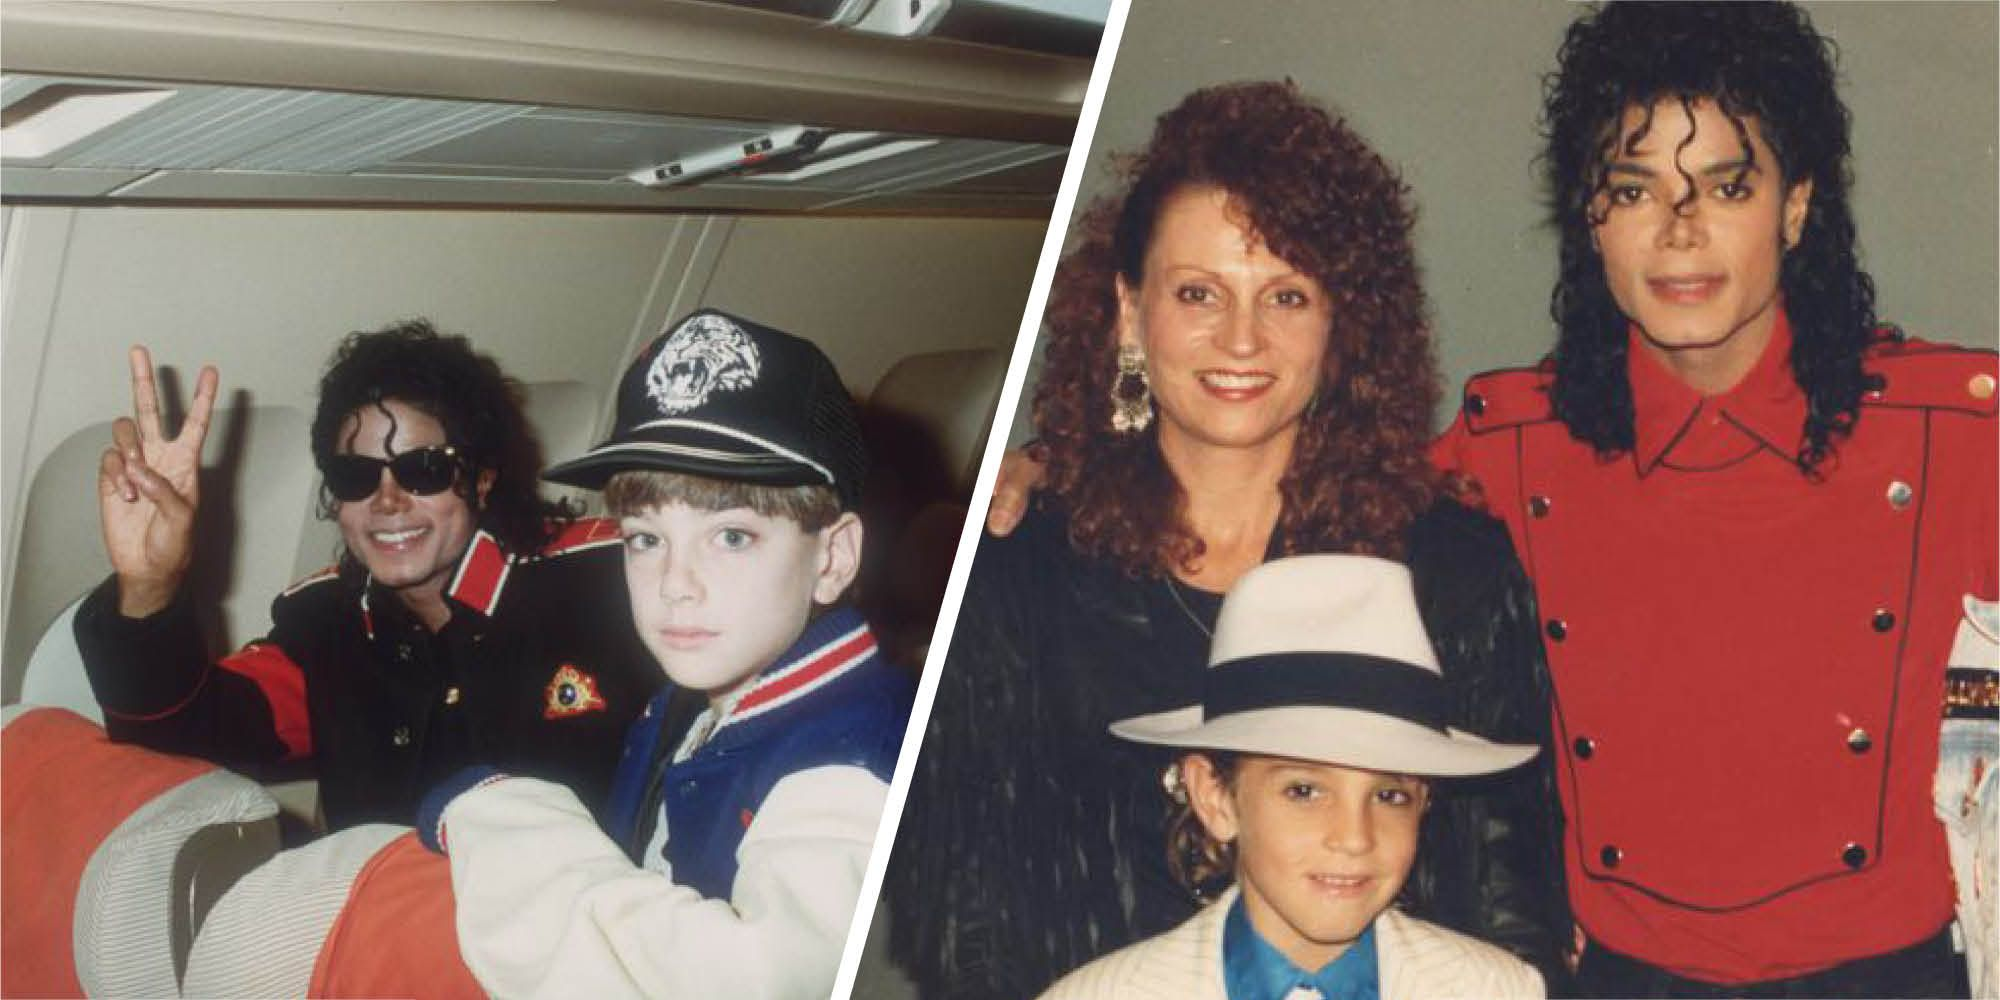 Leaving Neverland: 7 questions we have after the distressing documentary